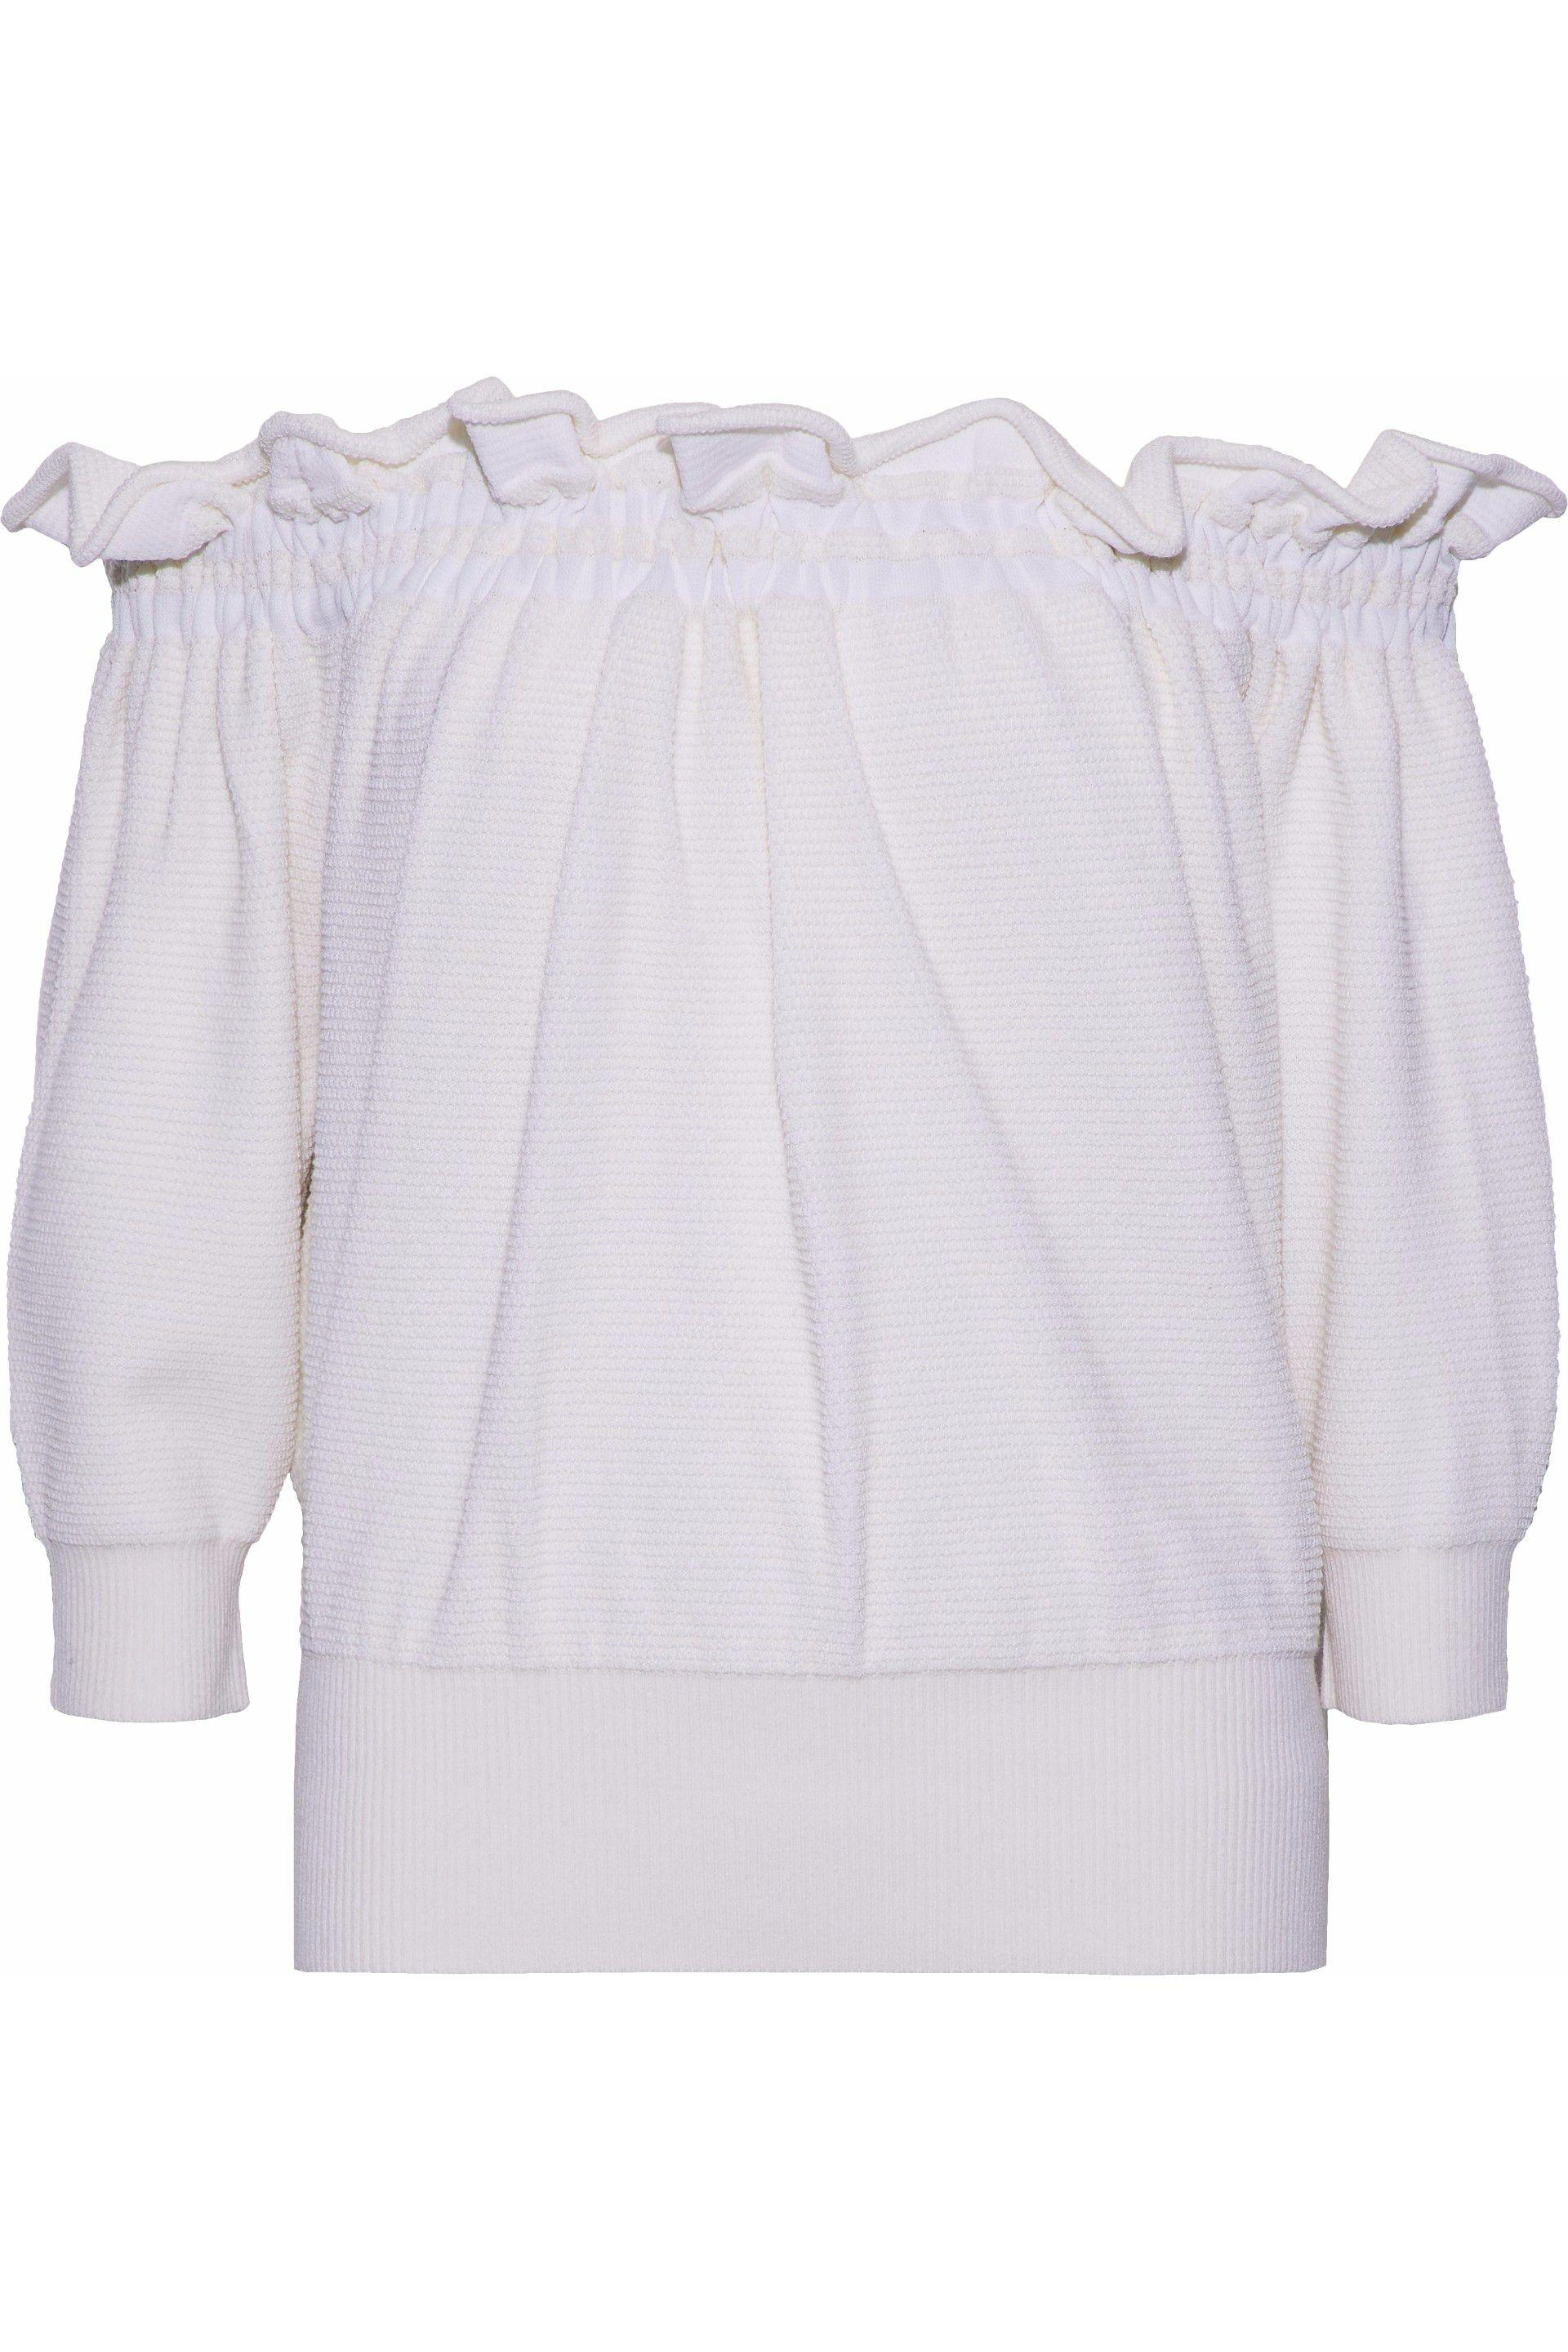 b45971d0ac1a9 Lyst - 3.1 Phillip Lim Woman Off-the-shoulder Ruffle-trimmed Waffle ...